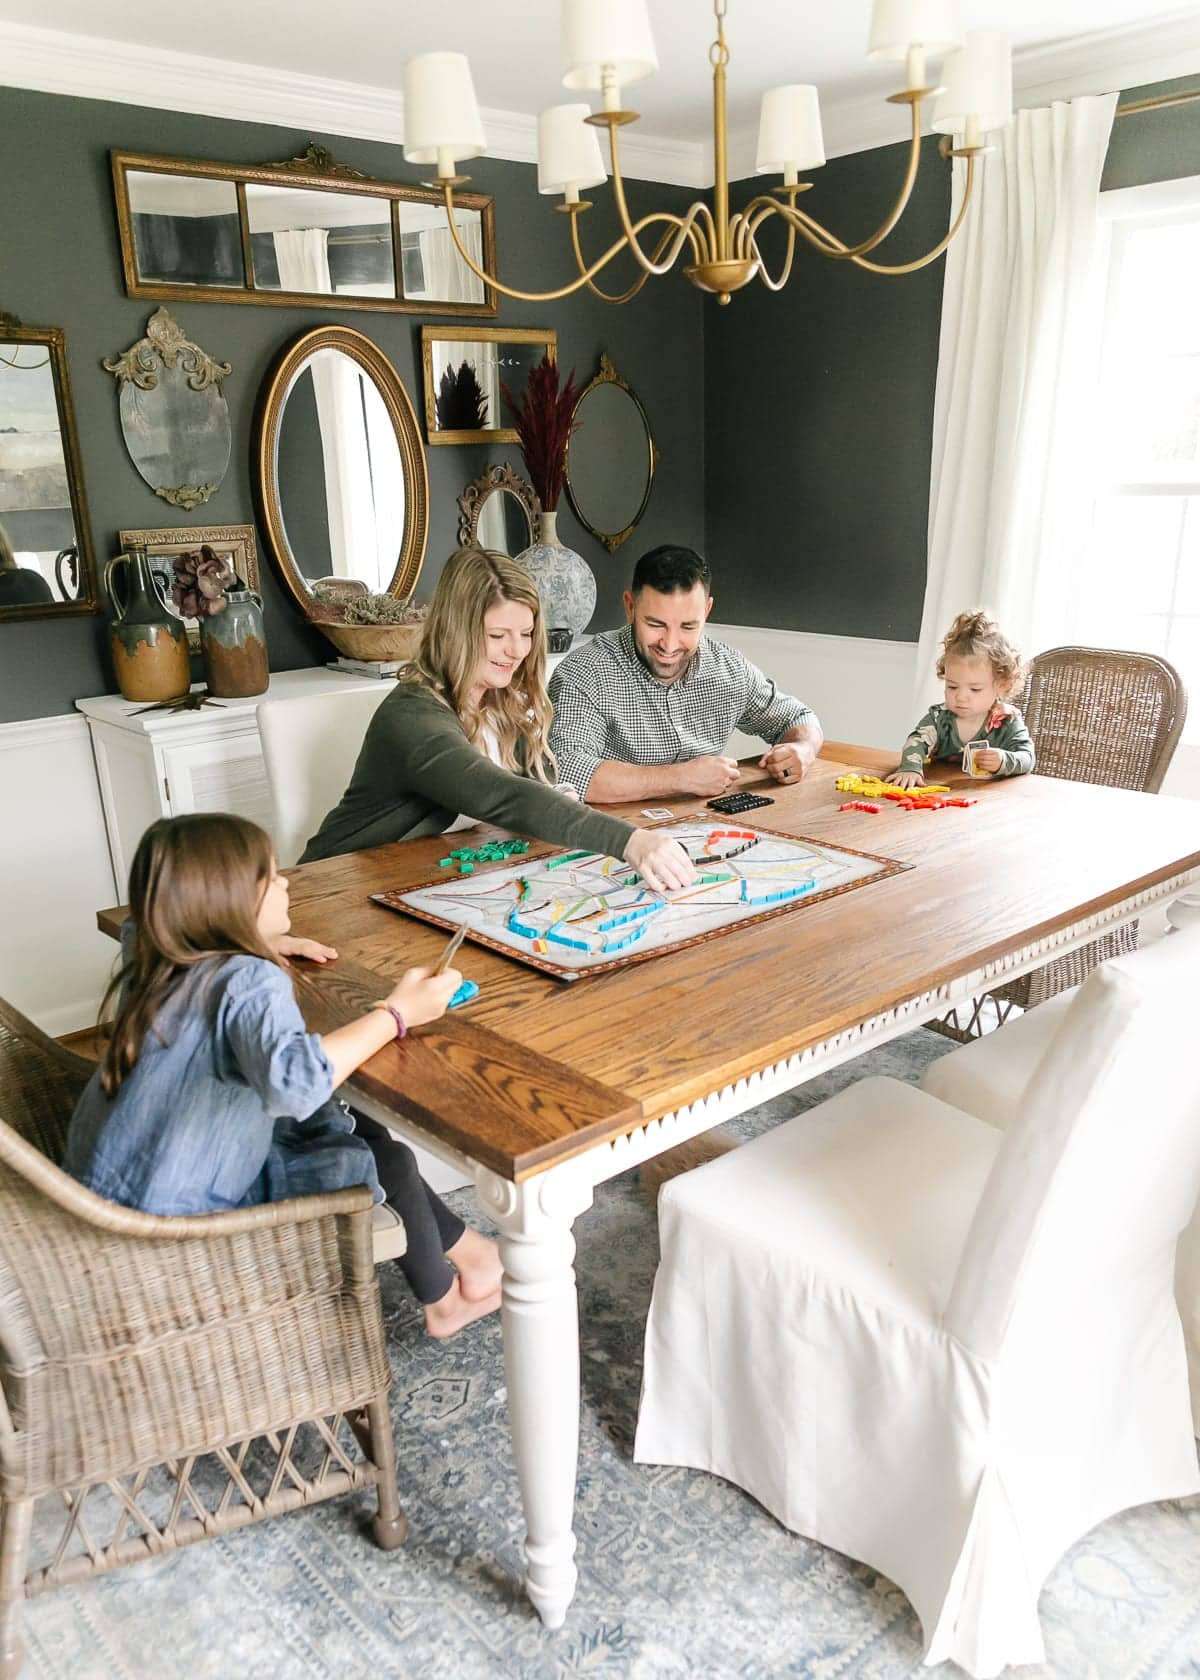 family playing board game at dining room table with gallery wall of mirrors behind